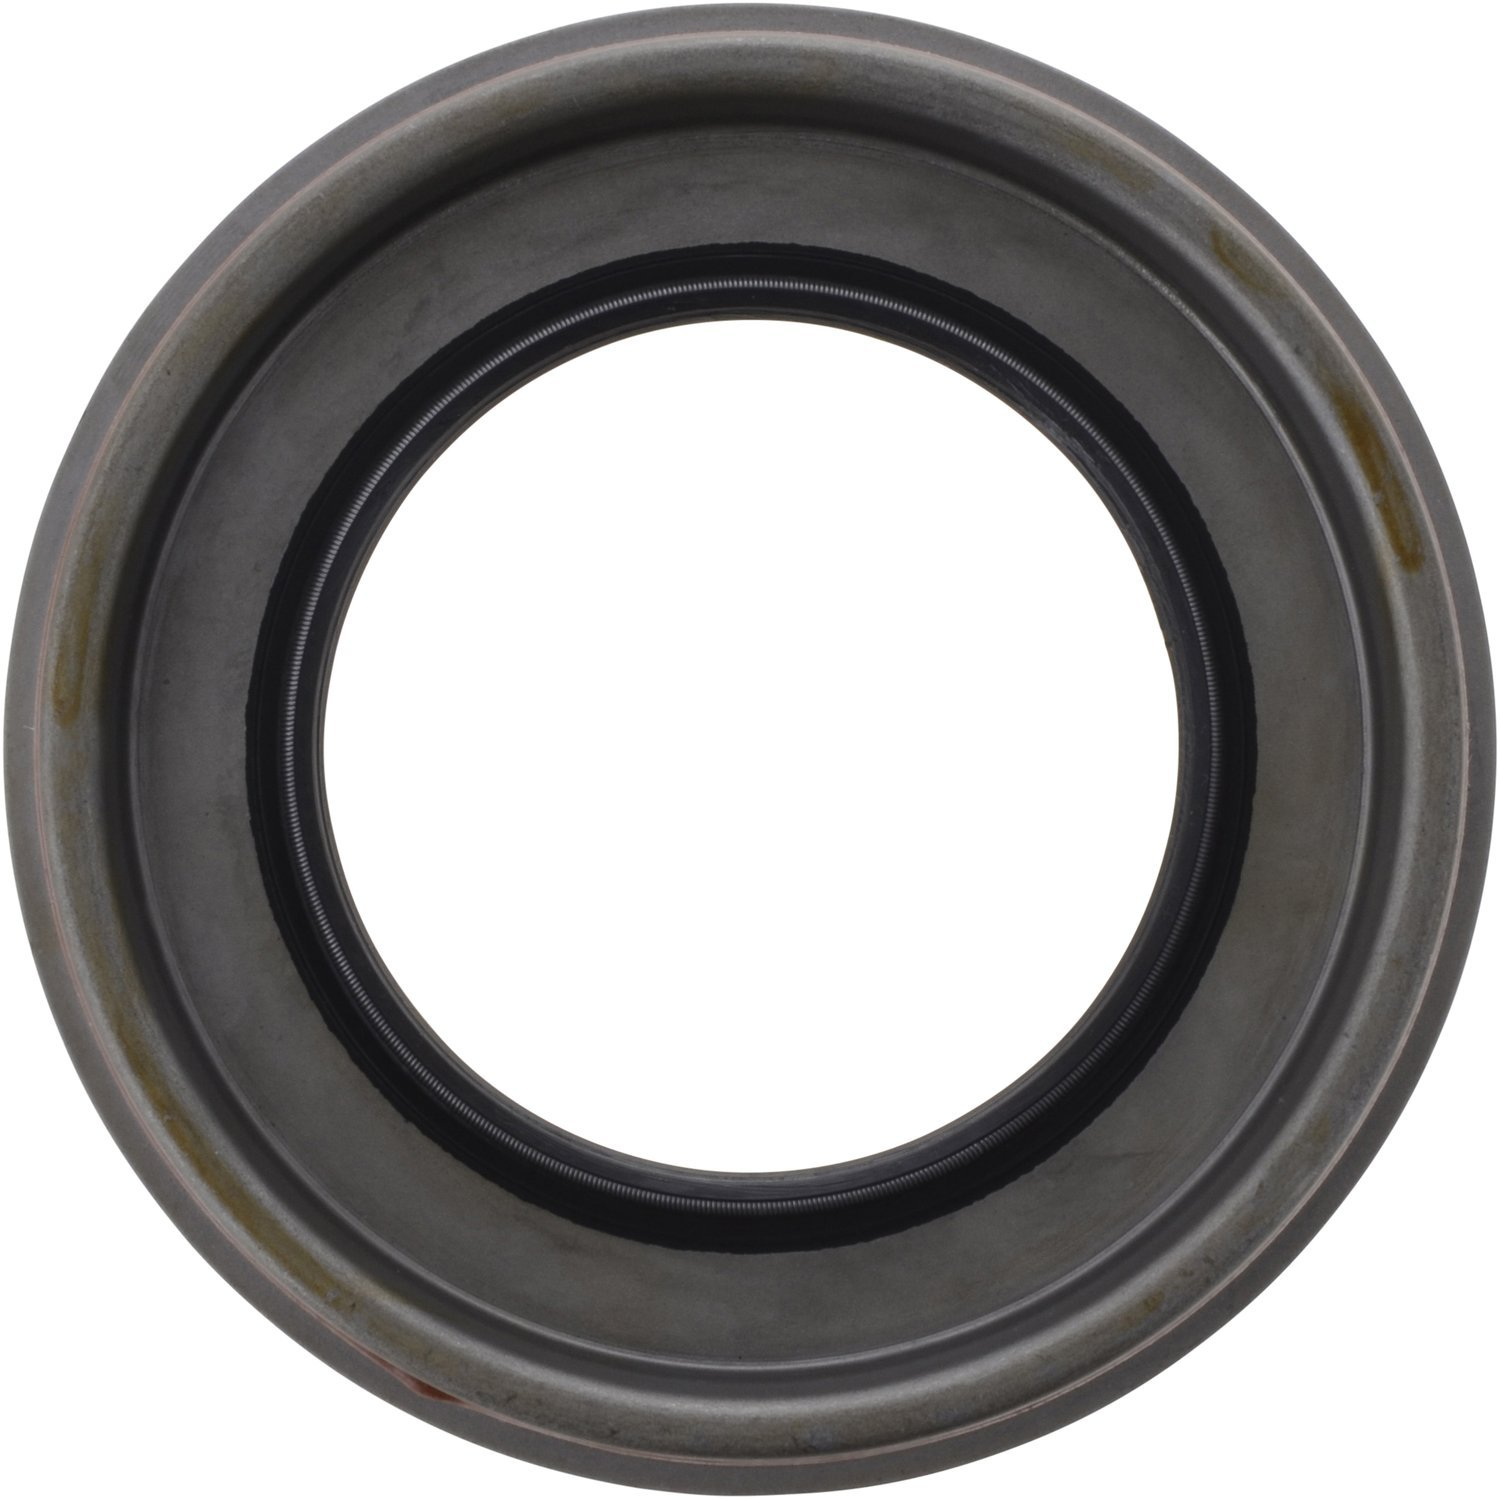 Spicer 2011840 Pinion Oil Seal